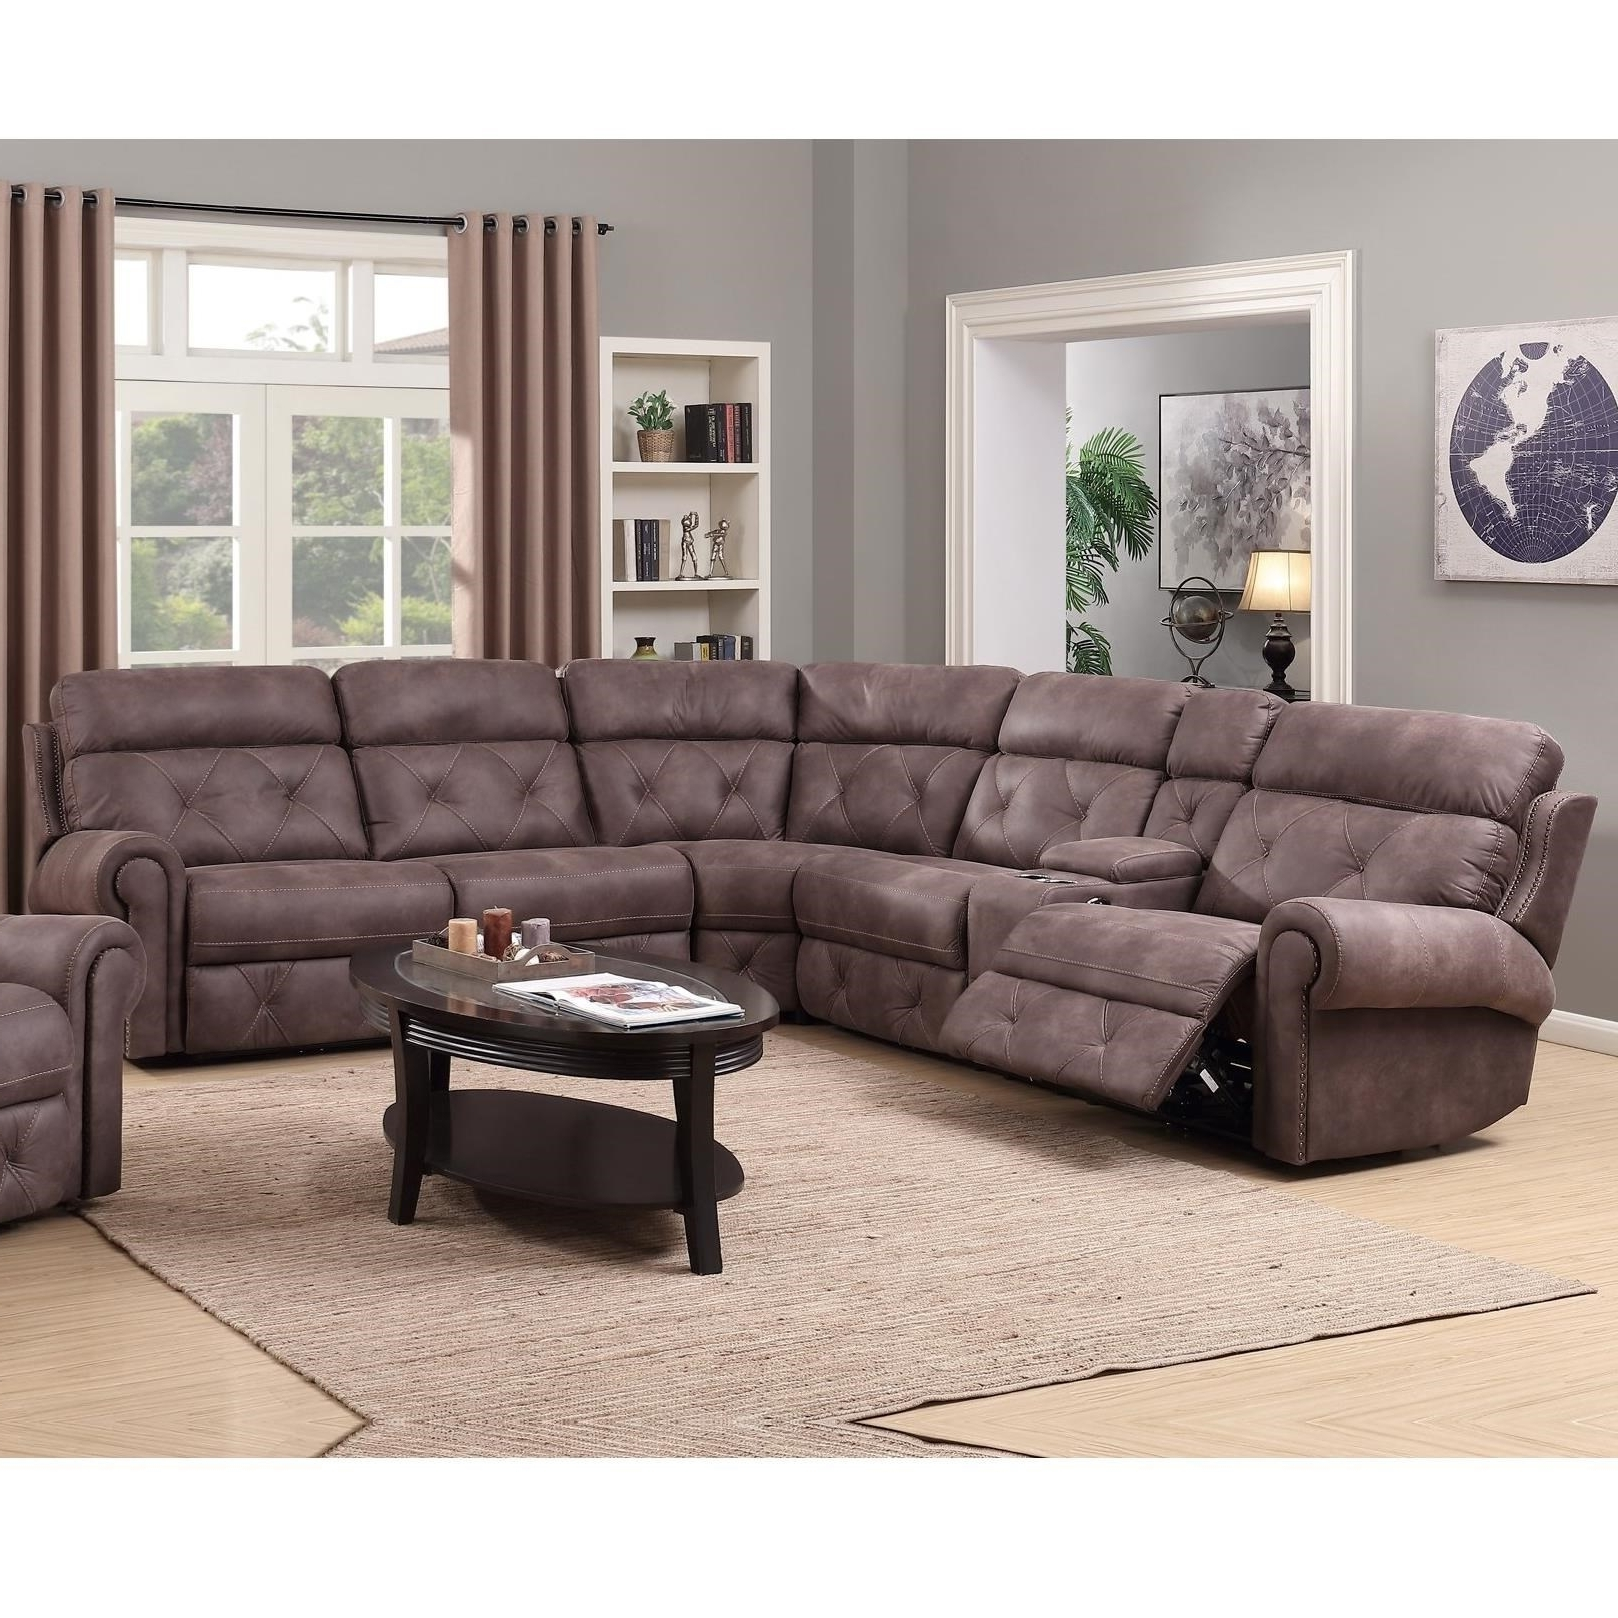 Murfreesboro Tn Sectional Sofas For Preferred Furniture: Ashley Furniture N Nashville Furniture Furniture Stores (View 7 of 15)